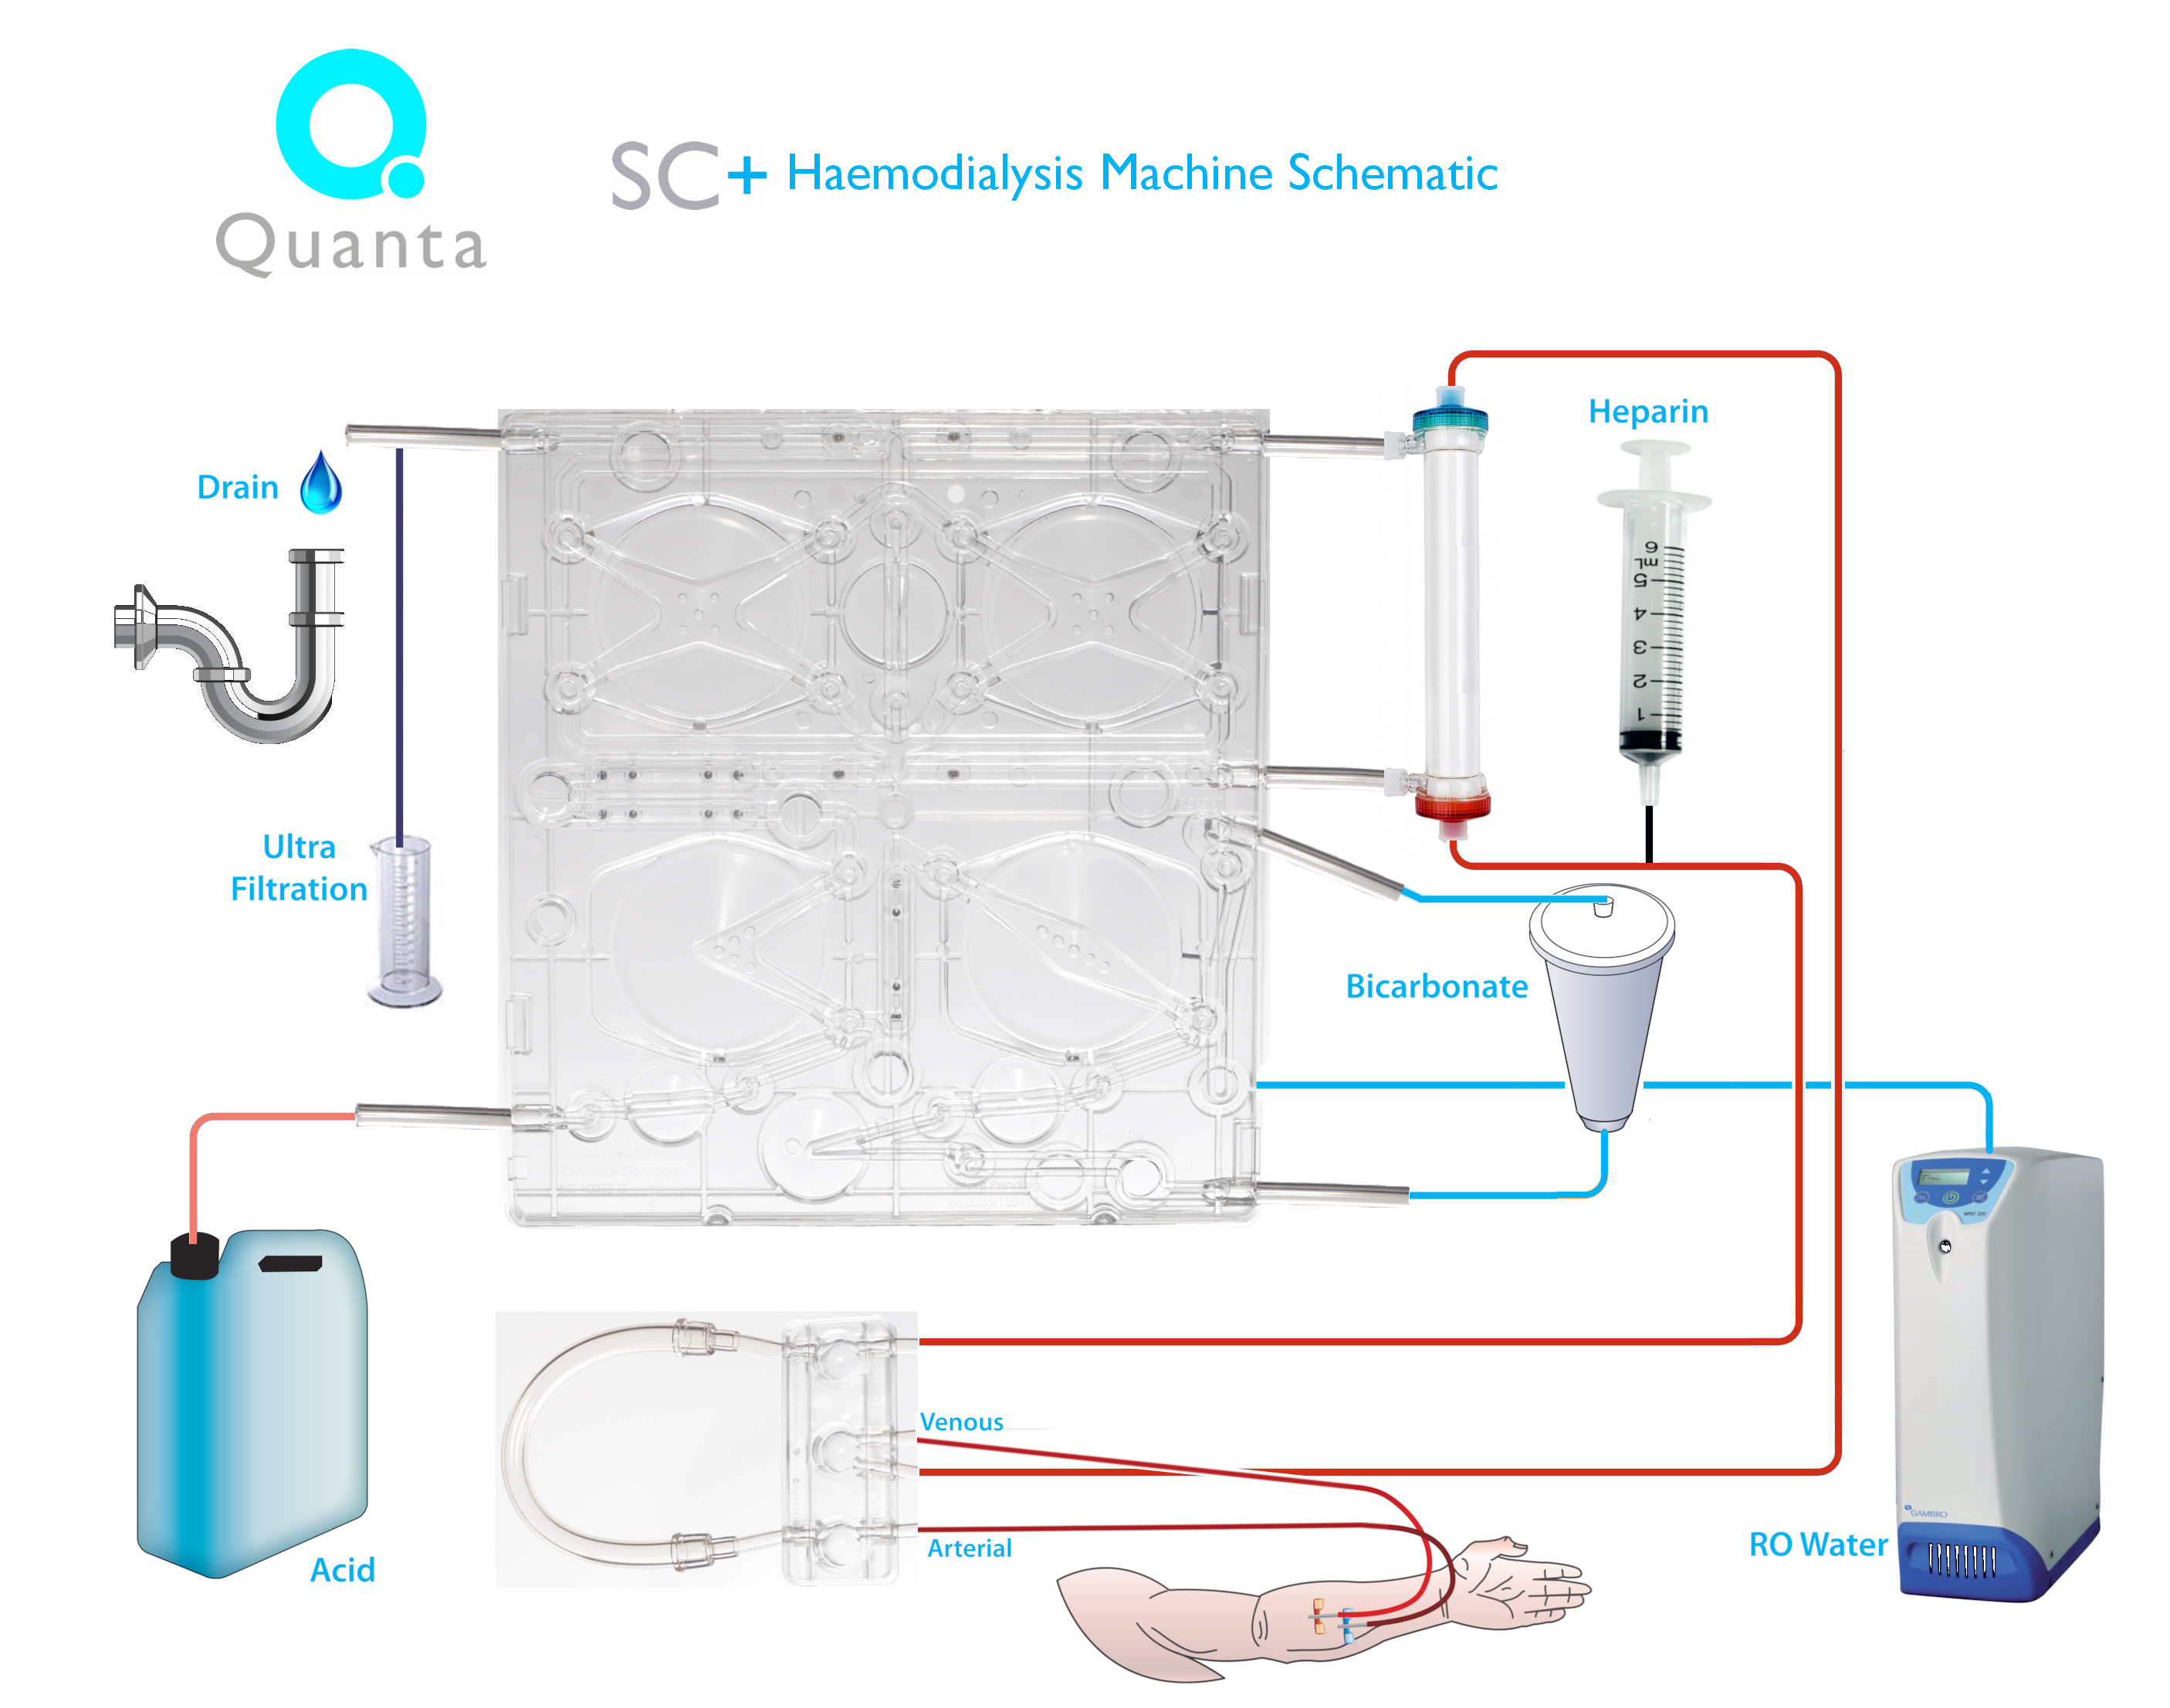 Quanta SC+ Haemodialysis Machine Schematic